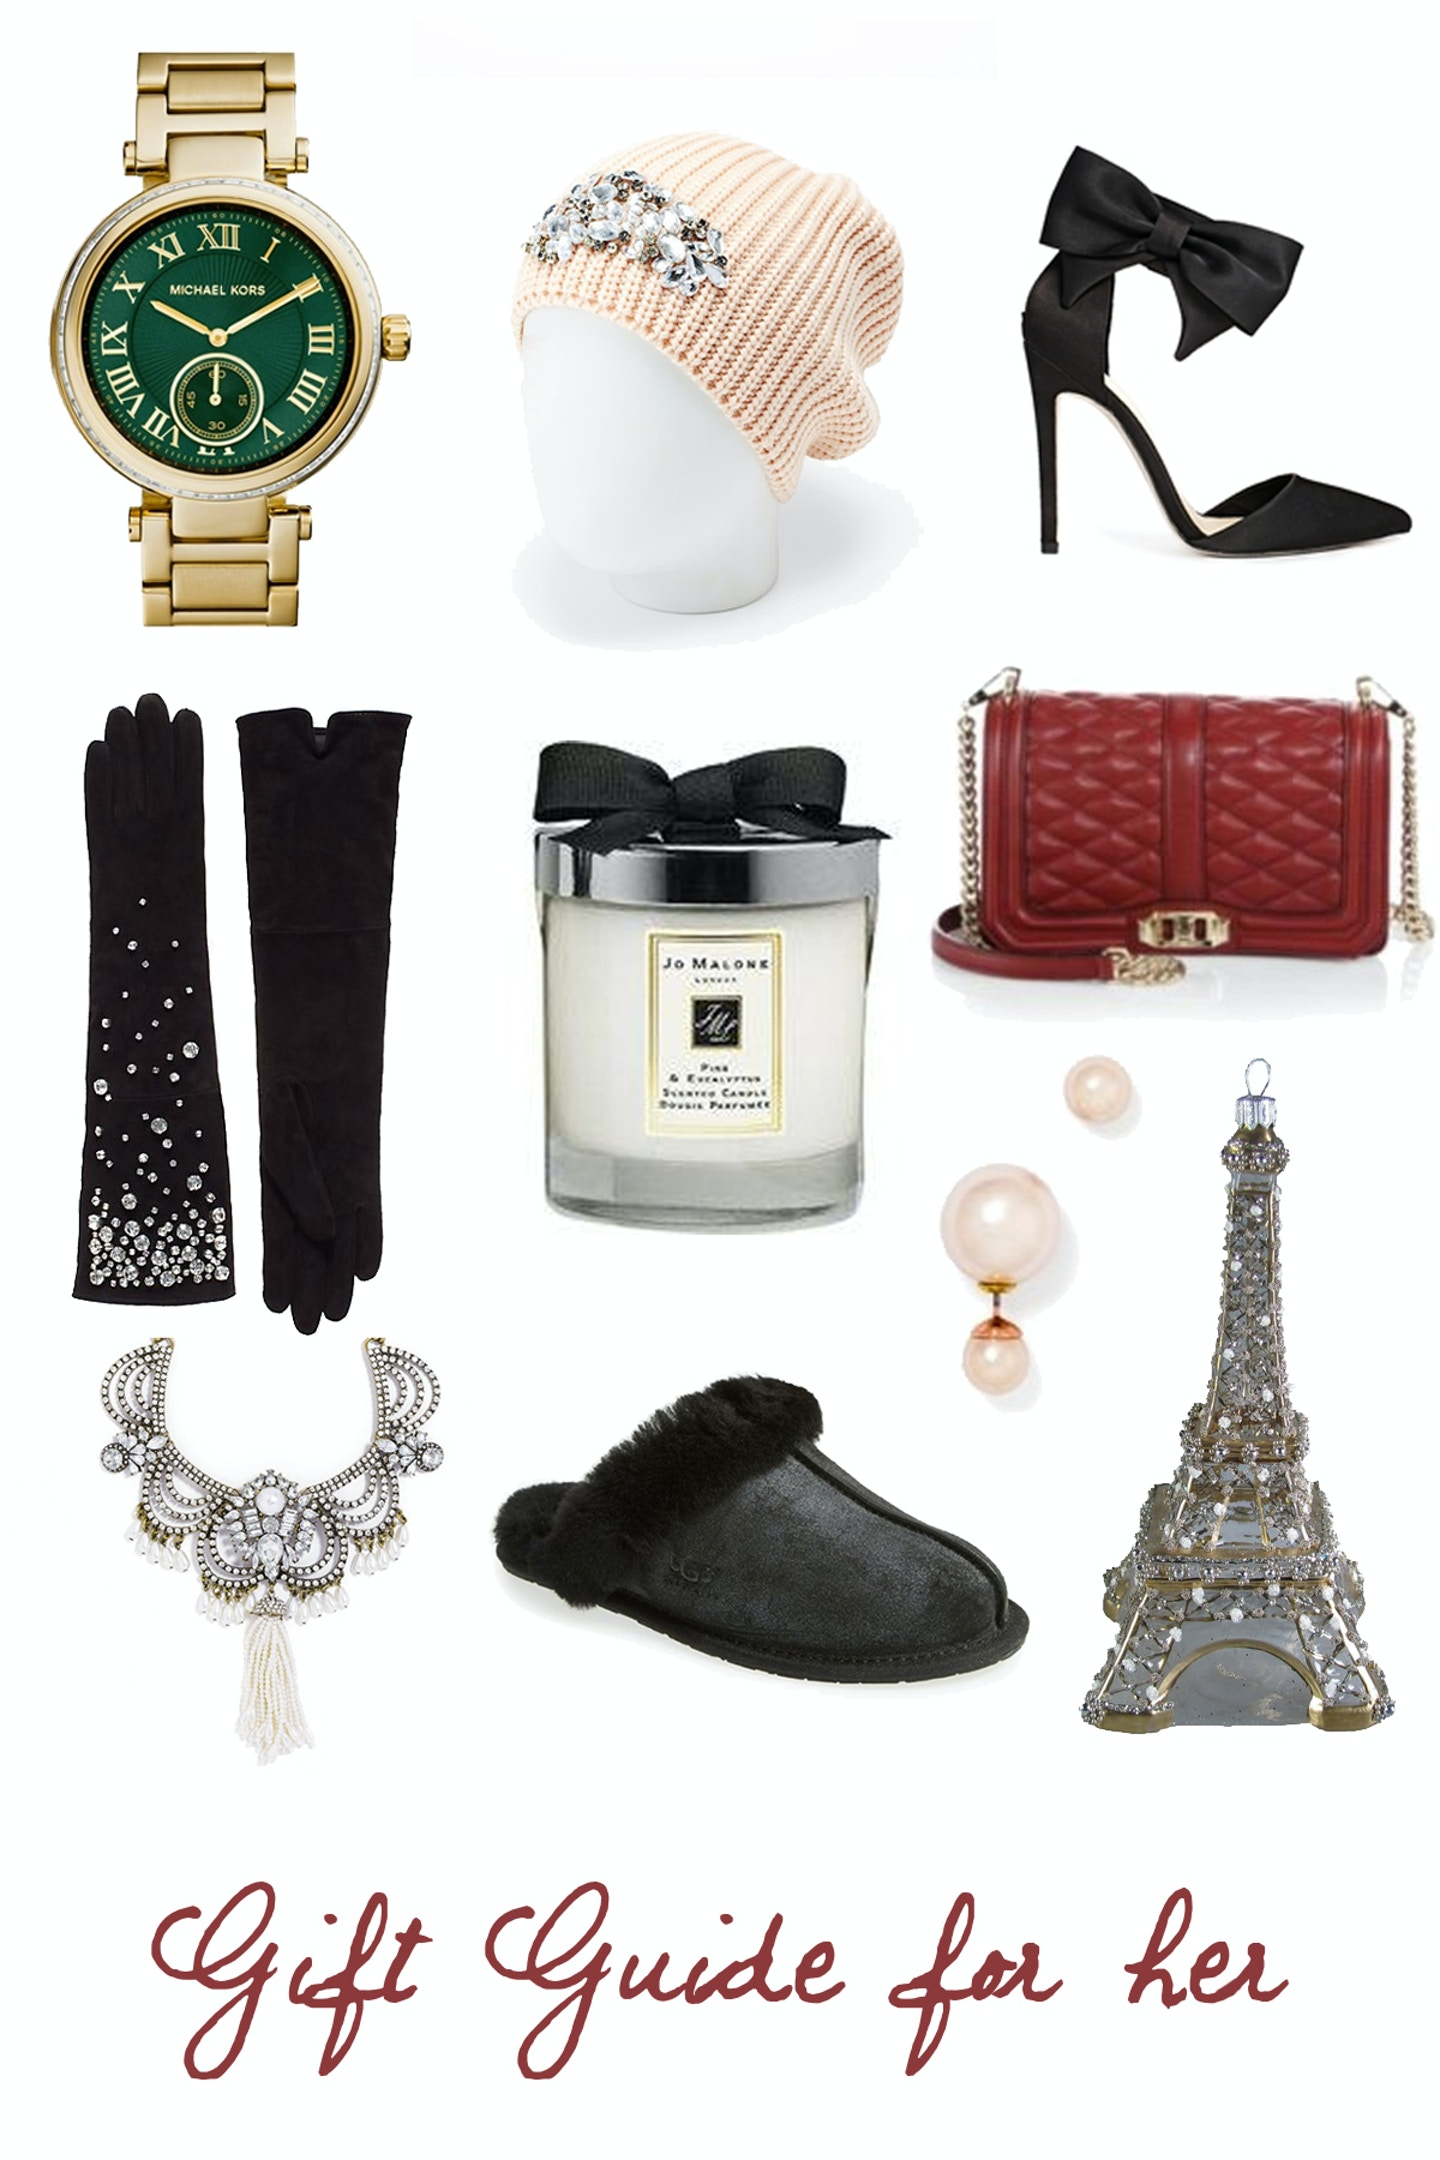 Top 10 Christmas 2014 gift ideas for her - nataliastyle